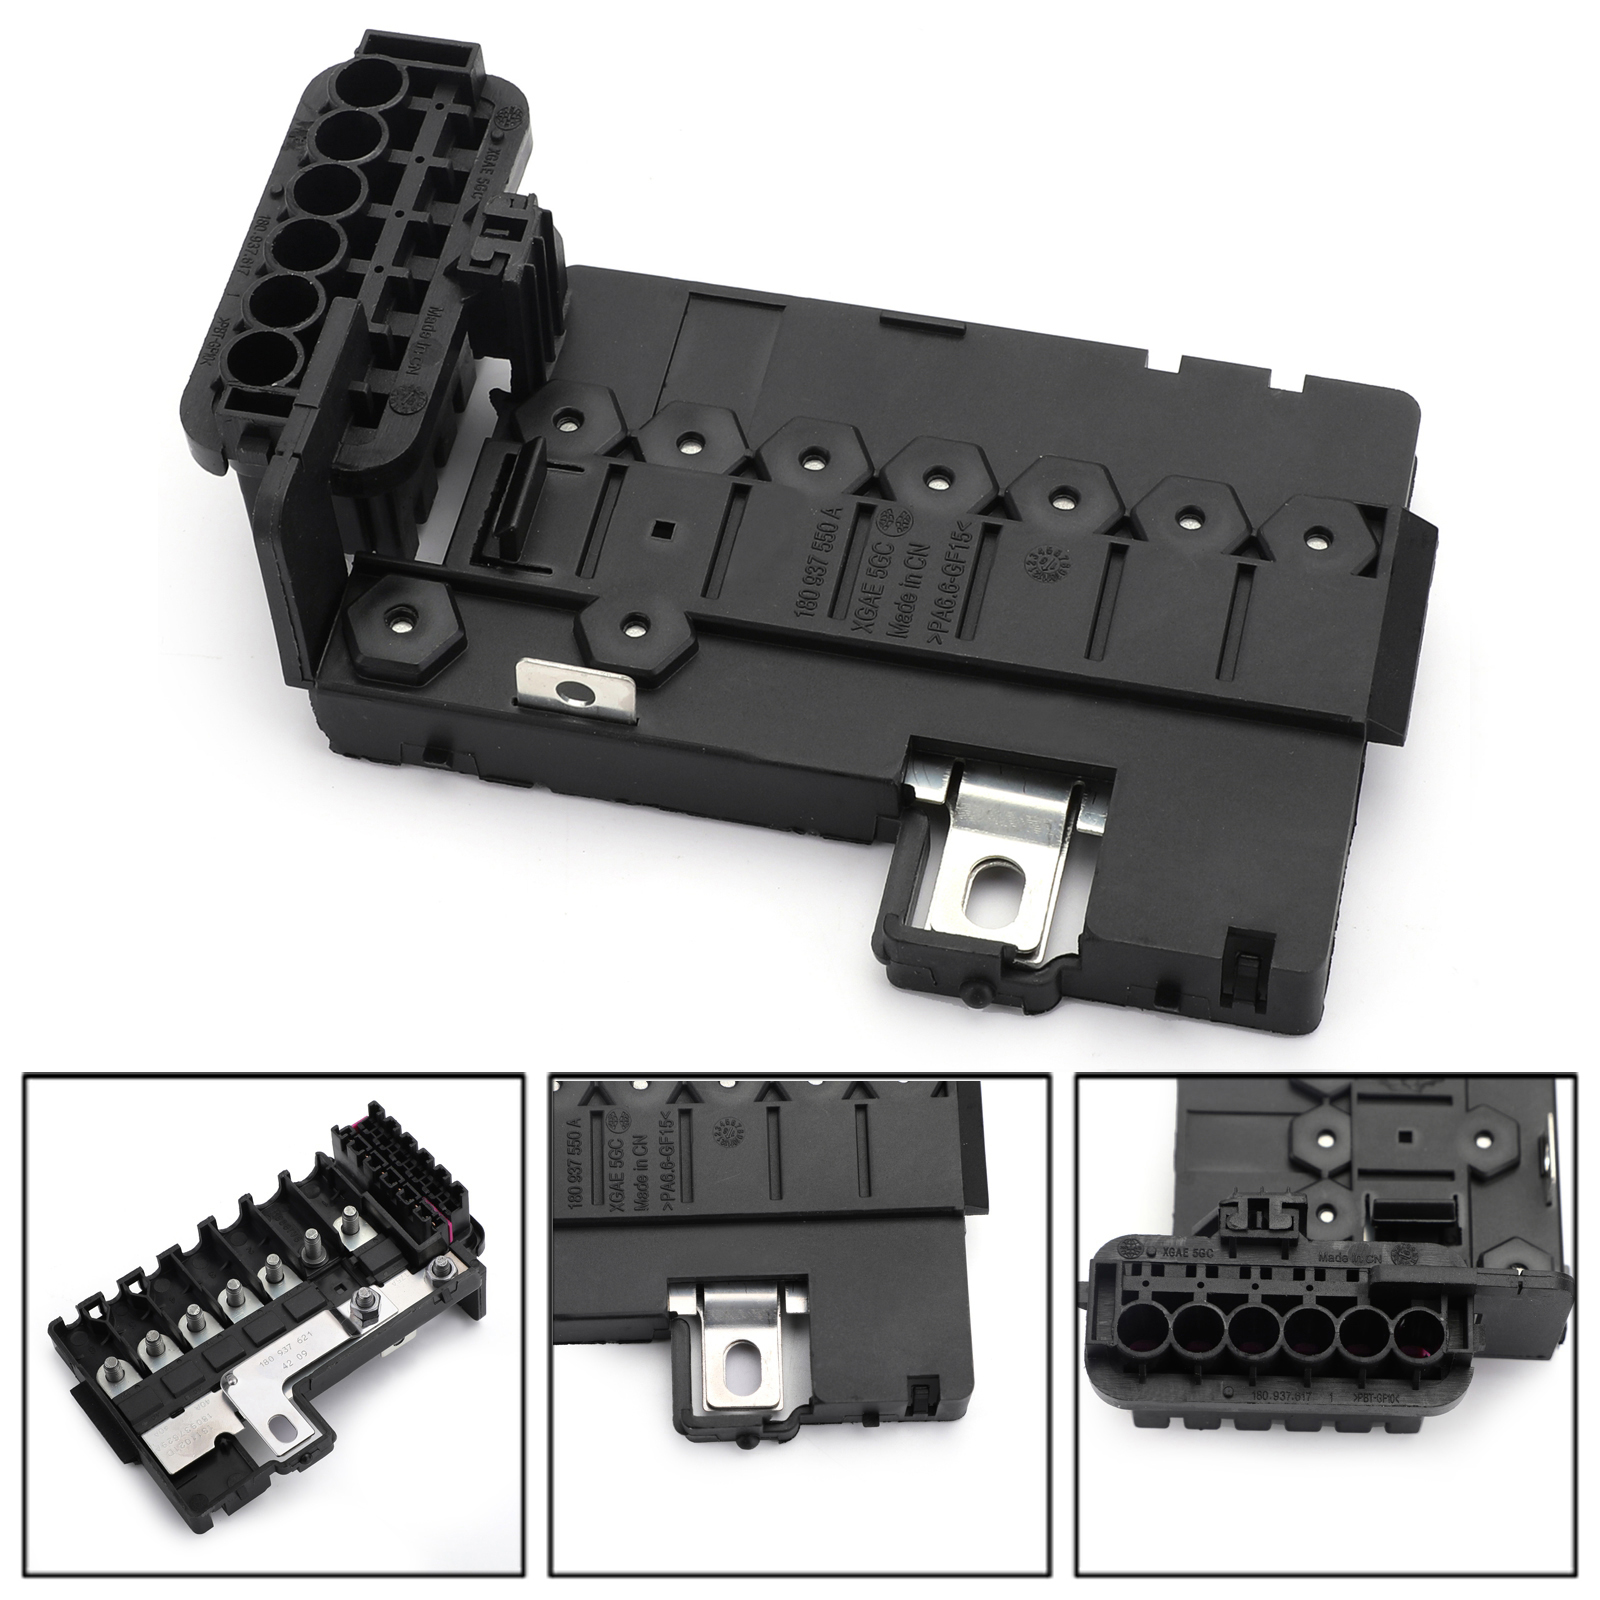 hight resolution of details about battery fuse box holder 6r0937548 for vw jetta mk6 polo santana skoda octavia